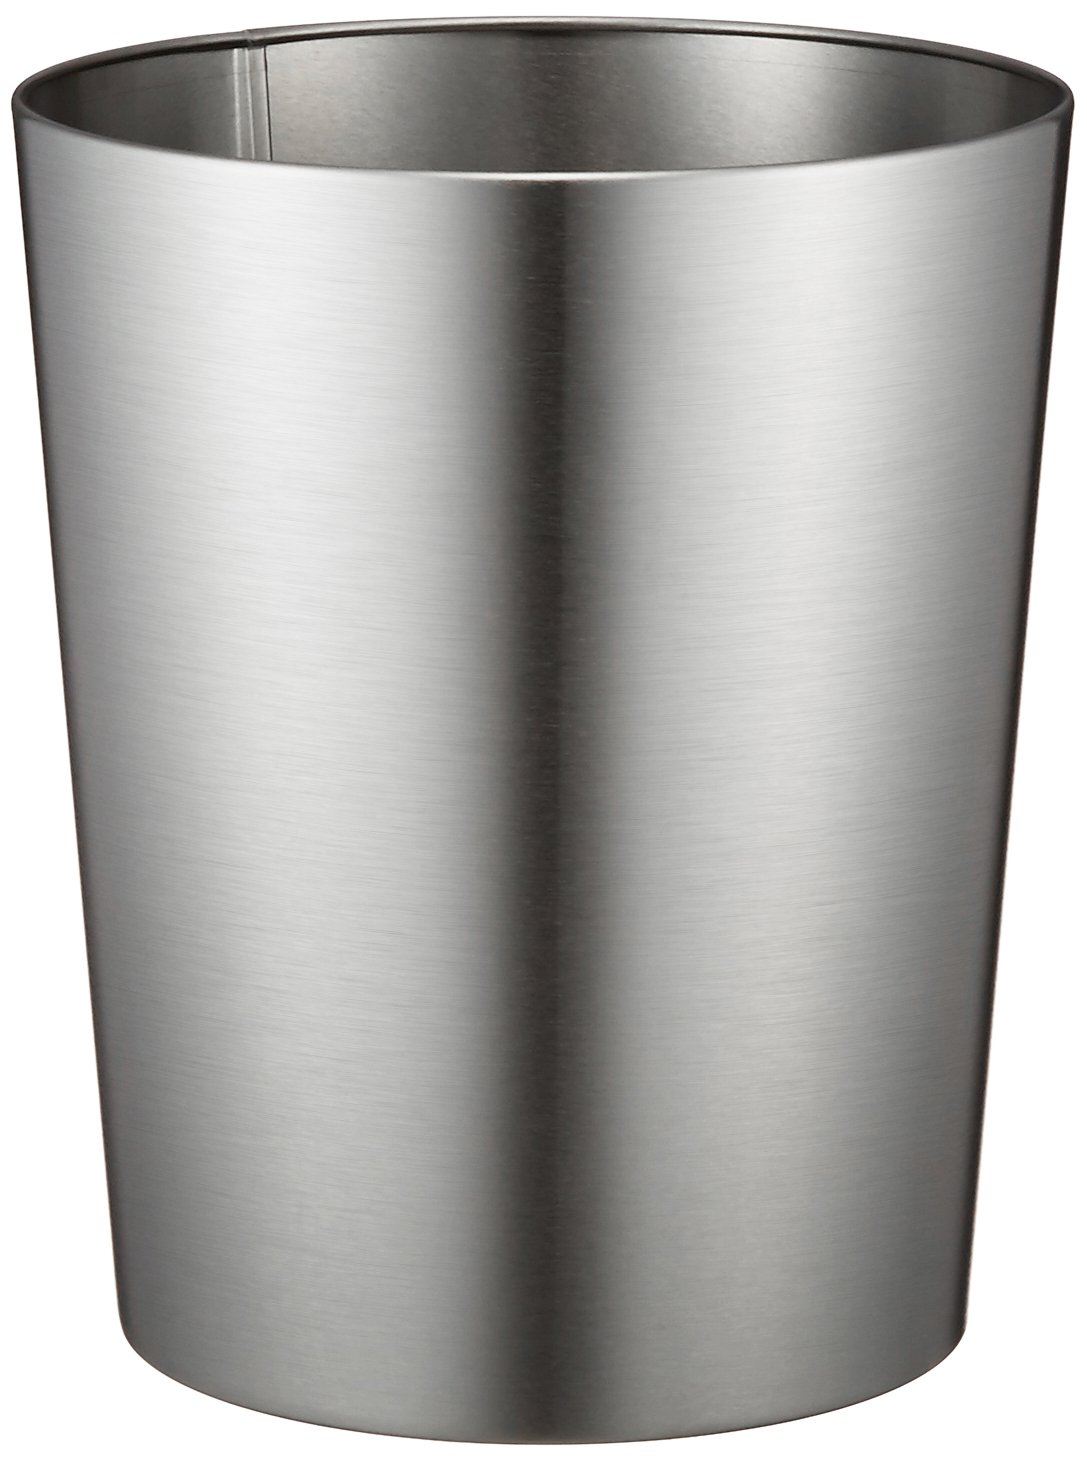 iDesign Patton Round Metal Trash Can, Waste Basket Garbage Can for Bathroom, Bedroom, Home Office, Dorm, College, 8'' x 8'' x 9.7'', Brushed Stainless Steel by iDesign